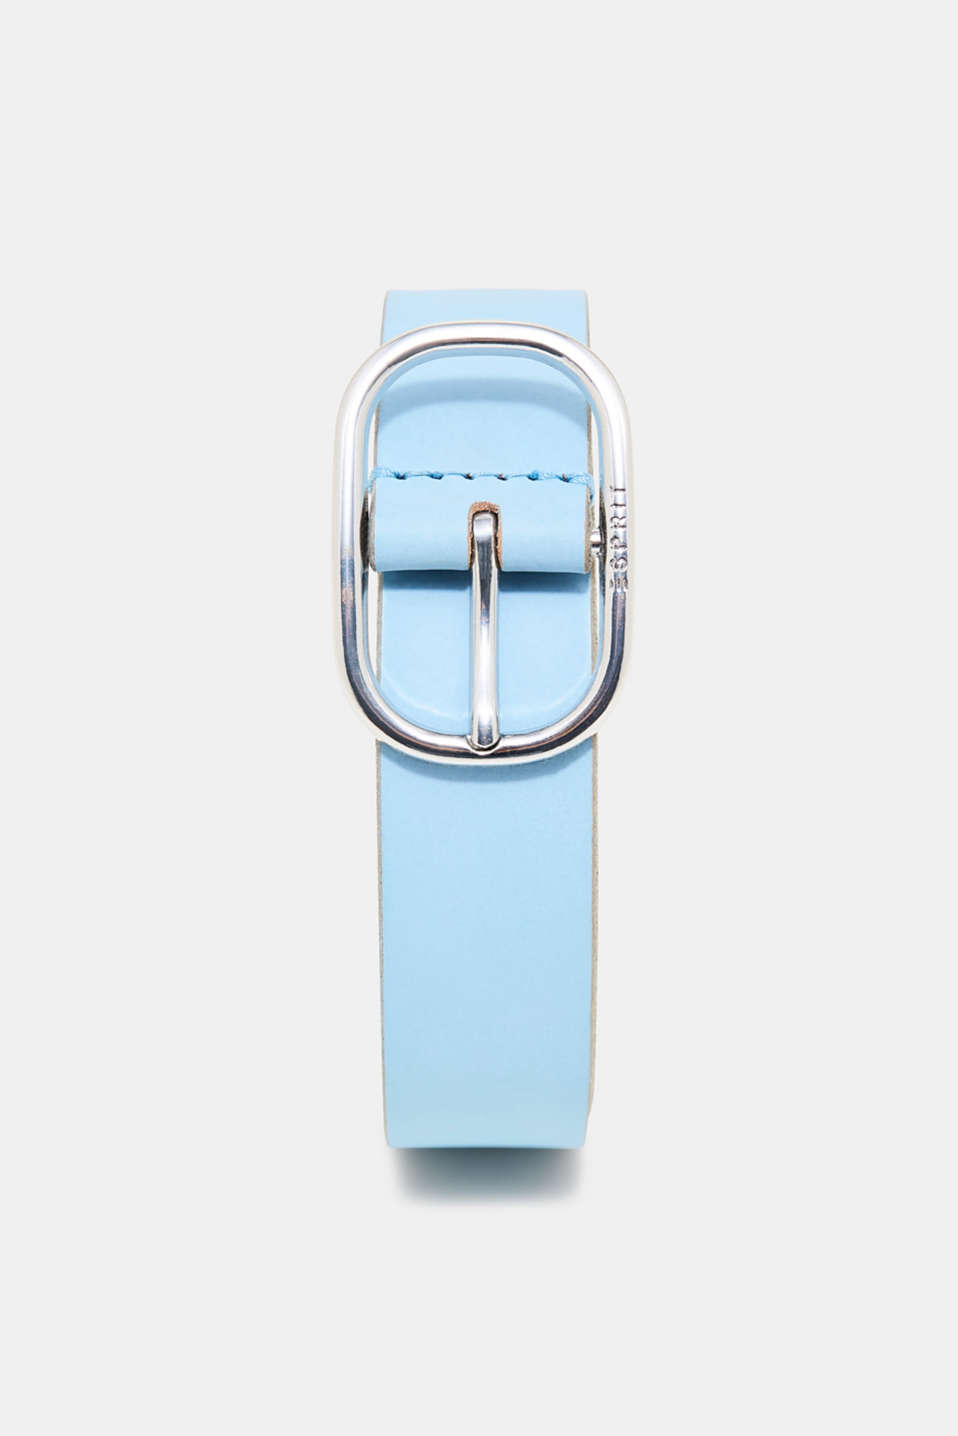 We love pastels! Fresh pastel tones make this belt a very special accessory for your look.